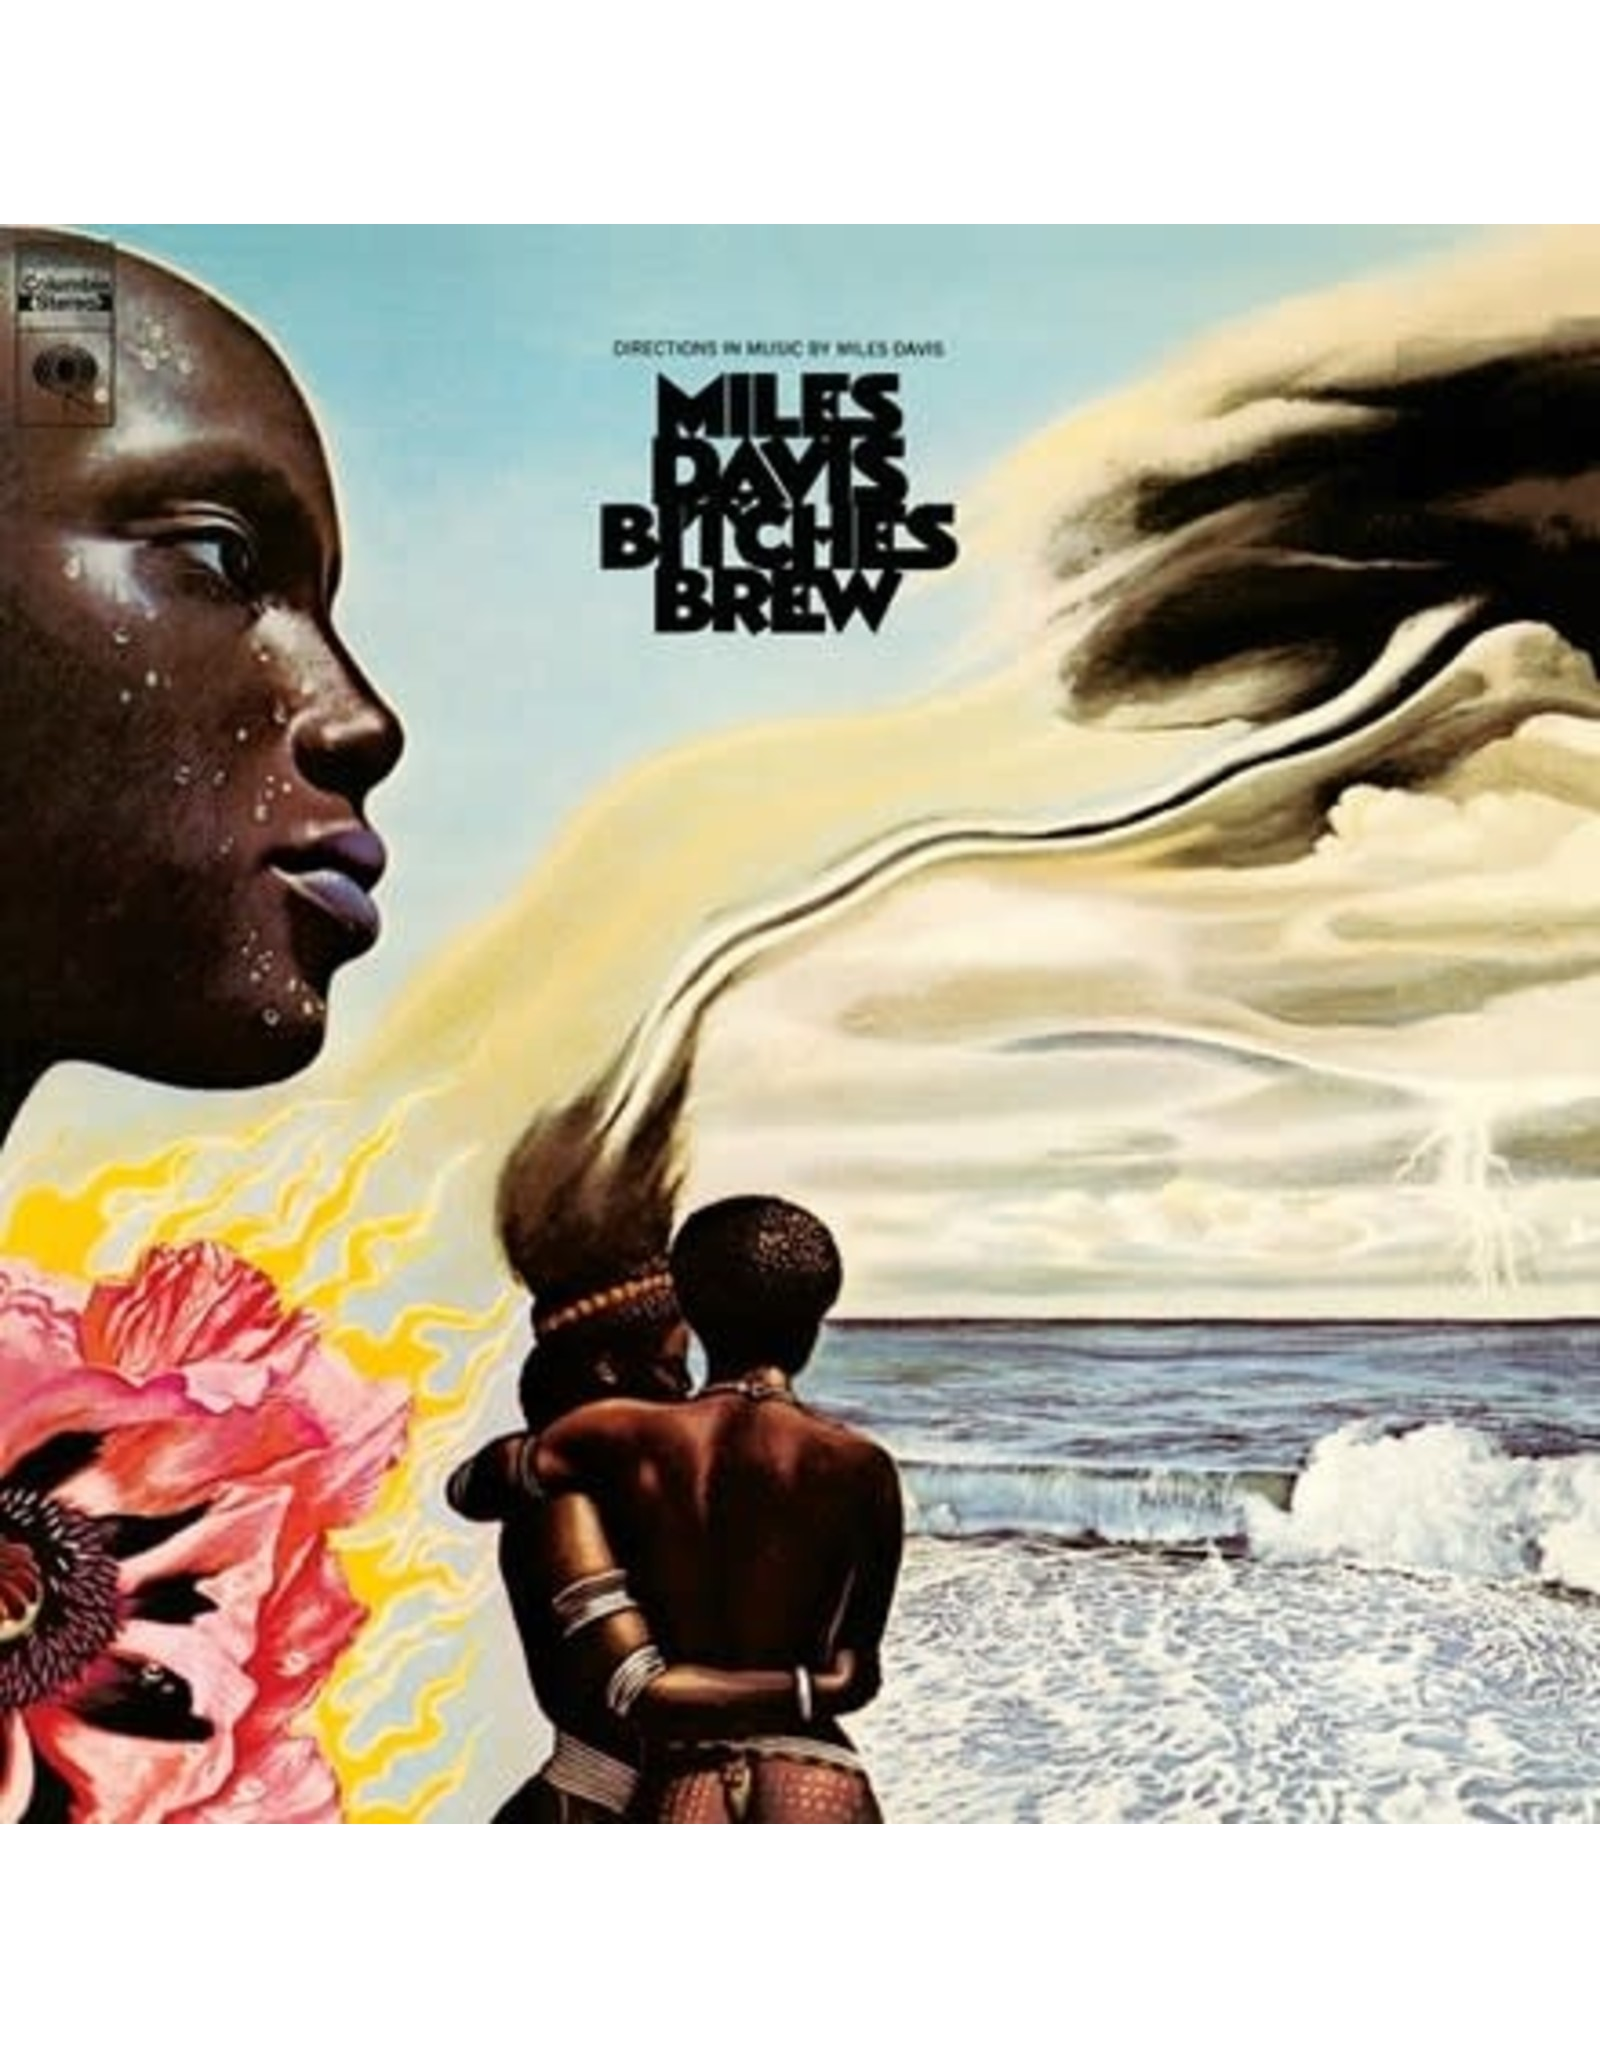 Legacy Davis, Miles: Bitches Brew LP